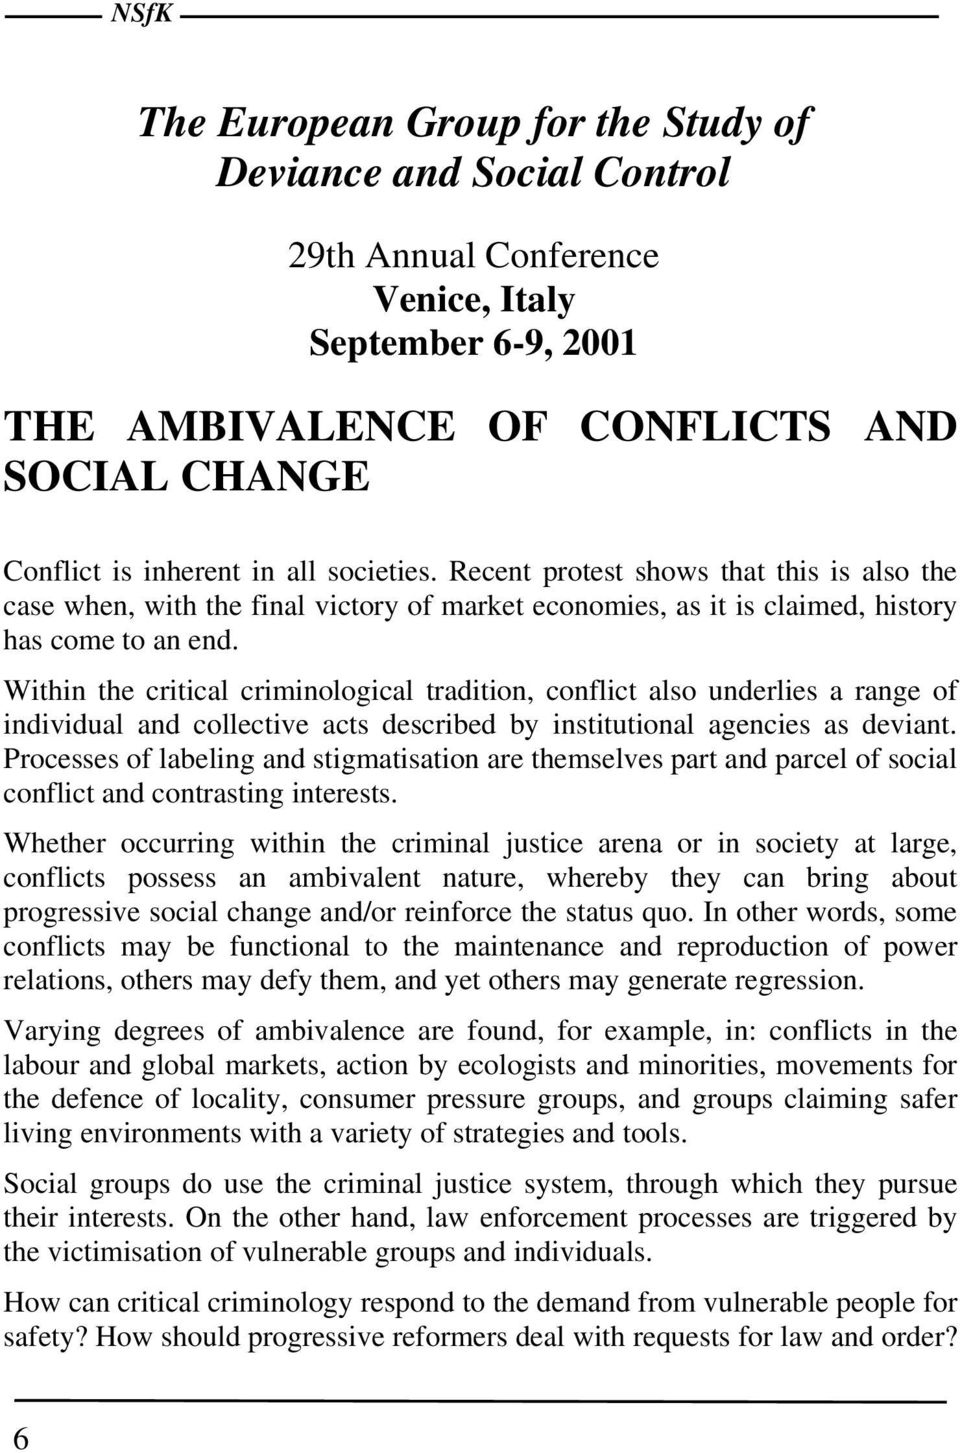 Within the critical criminological tradition, conflict also underlies a range of individual and collective acts described by institutional agencies as deviant.